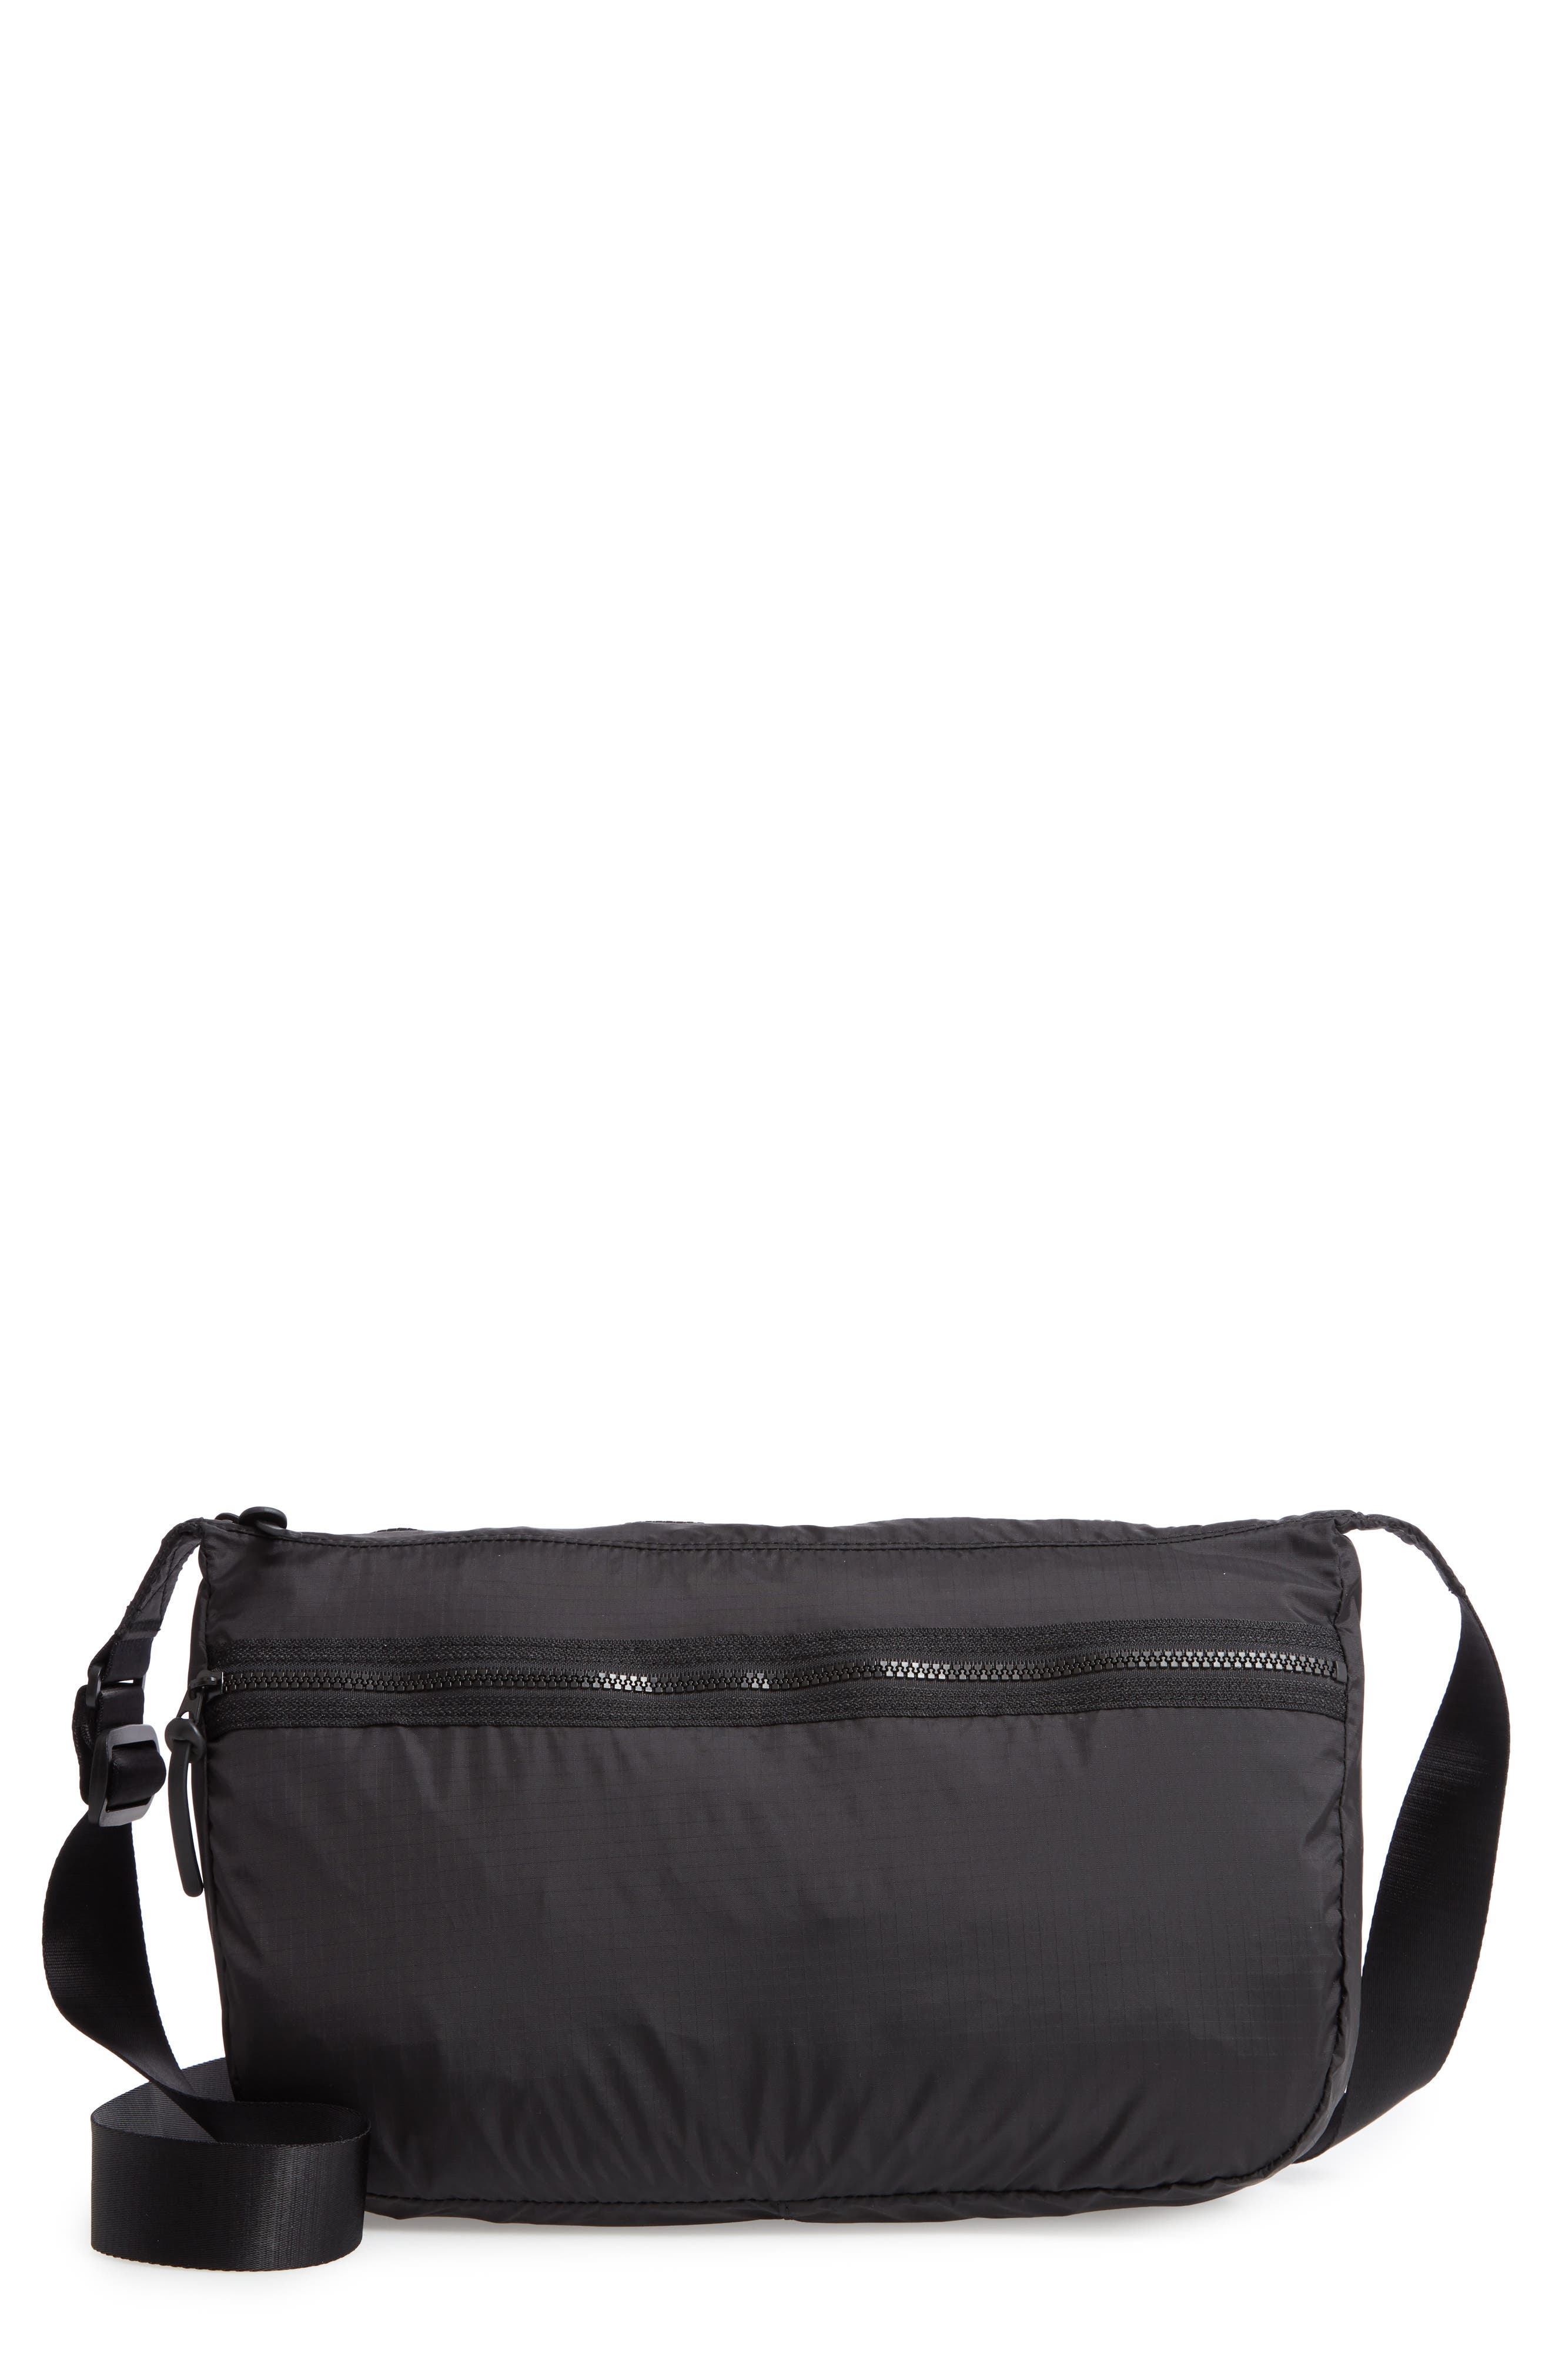 Ripstop Packable Crossbody Tote, Main, color, BLACK